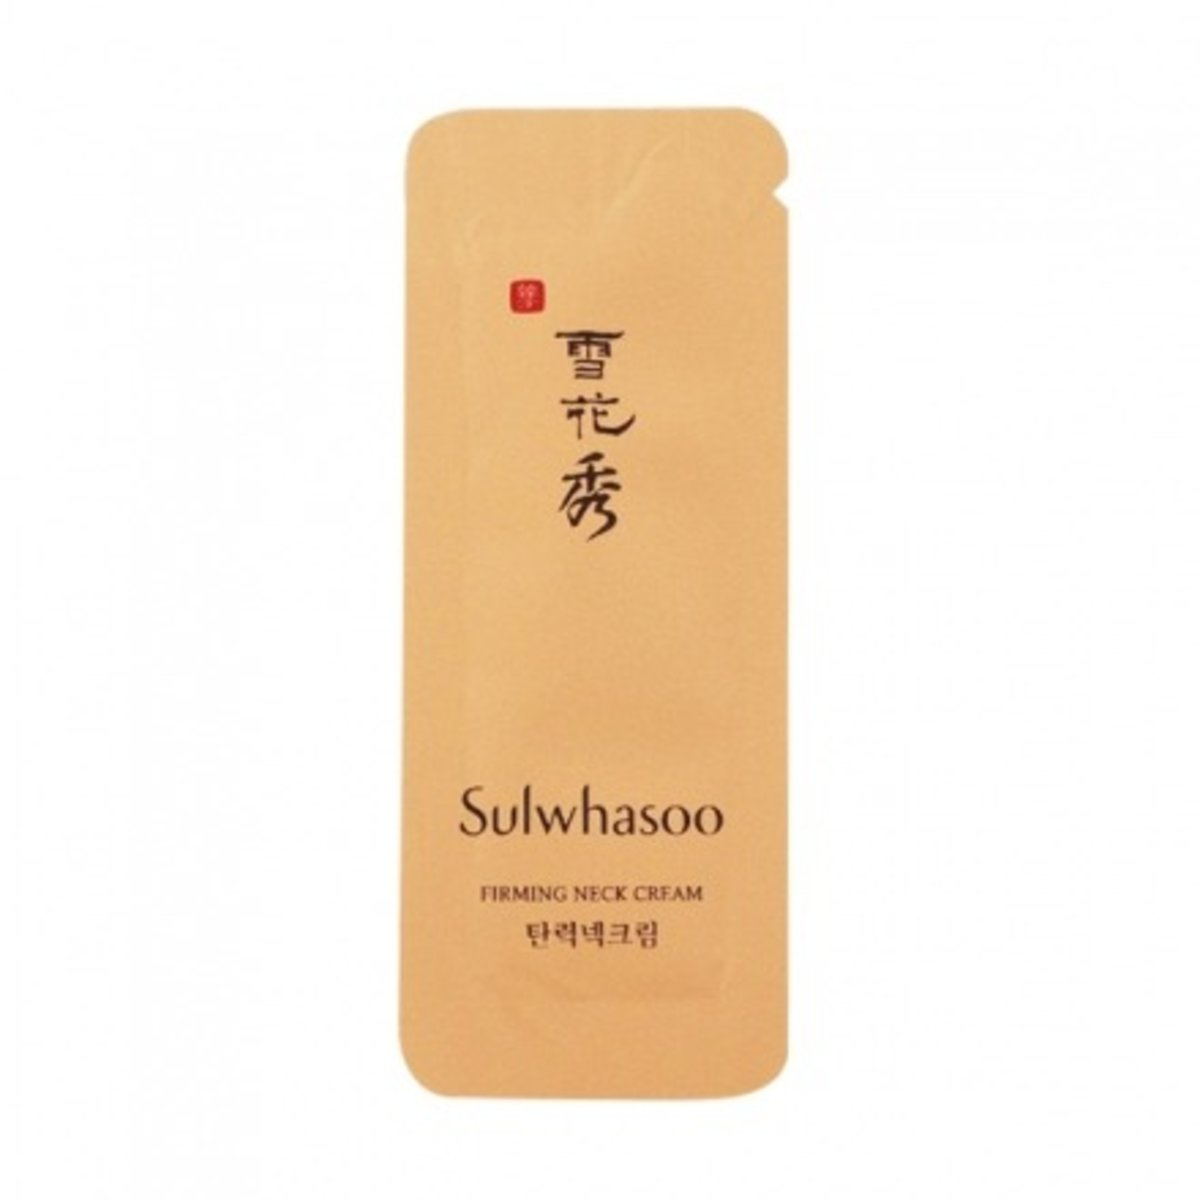 Firming Neck Cream 1ml x10pcs    [Parallel Import Product]